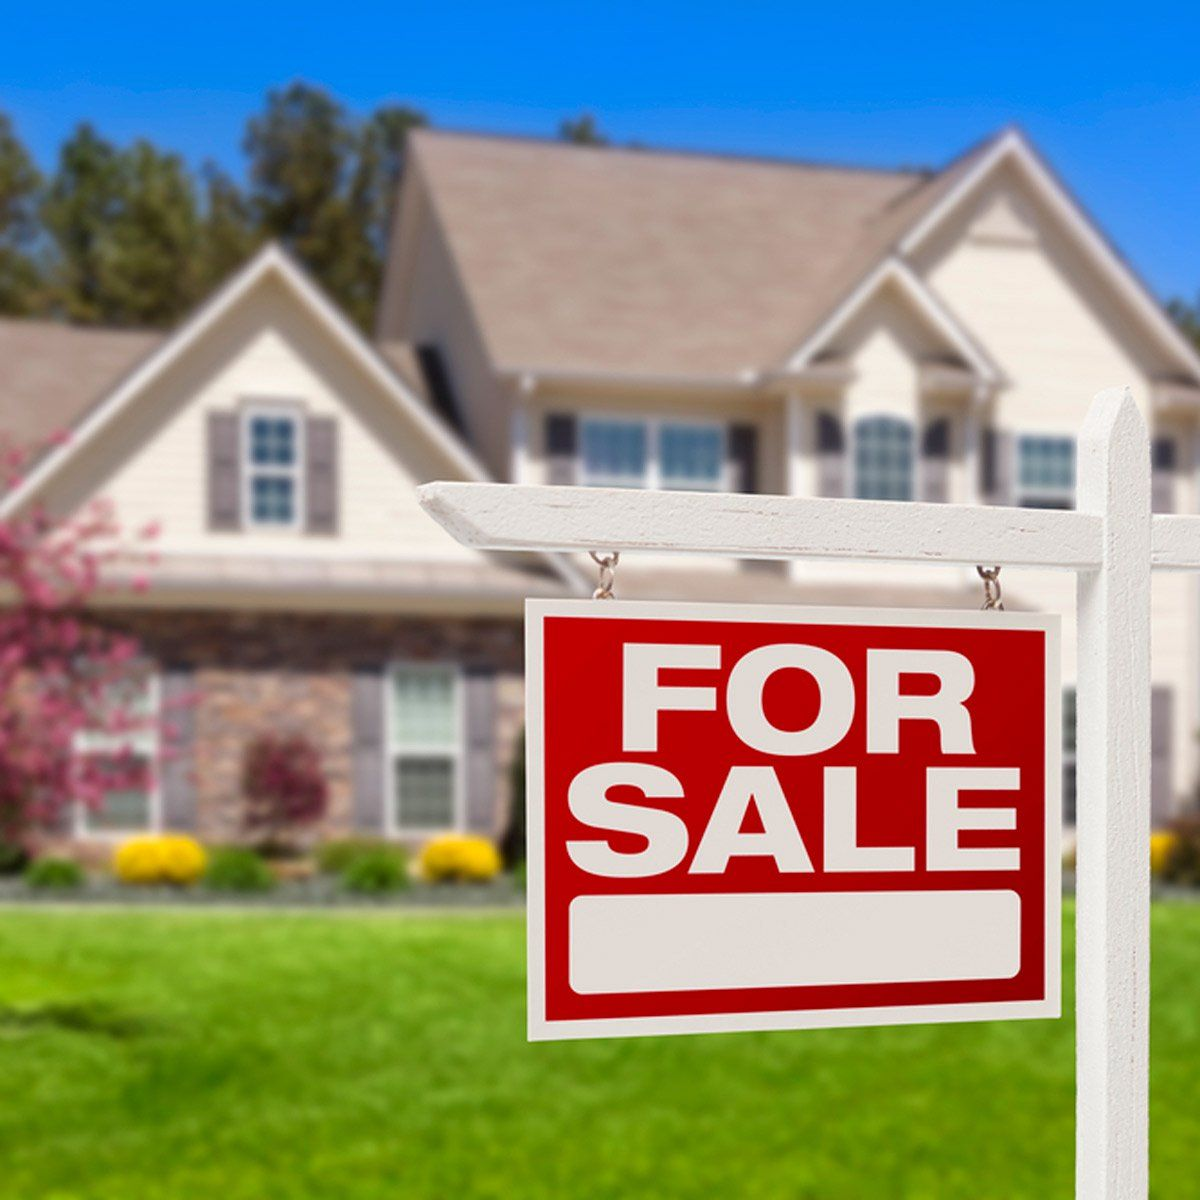 How Much Did It Cost To Buy A House The Decade You Were Born Sell Your Own Home Home Buying Selling Your House